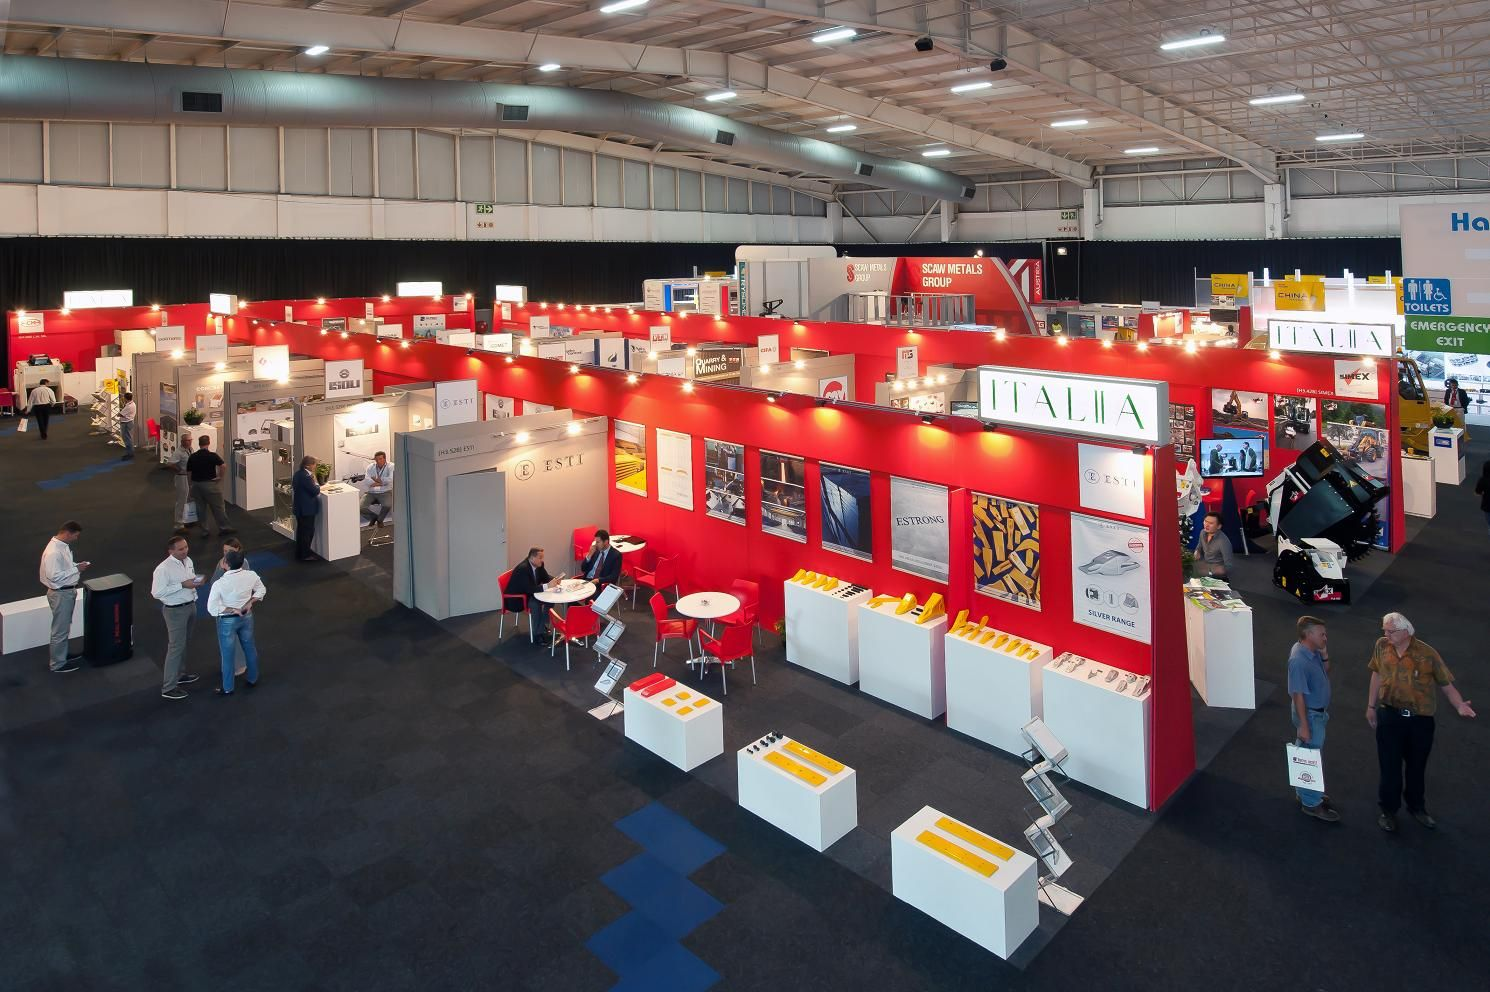 How to find exhibition stand builders that you can trust